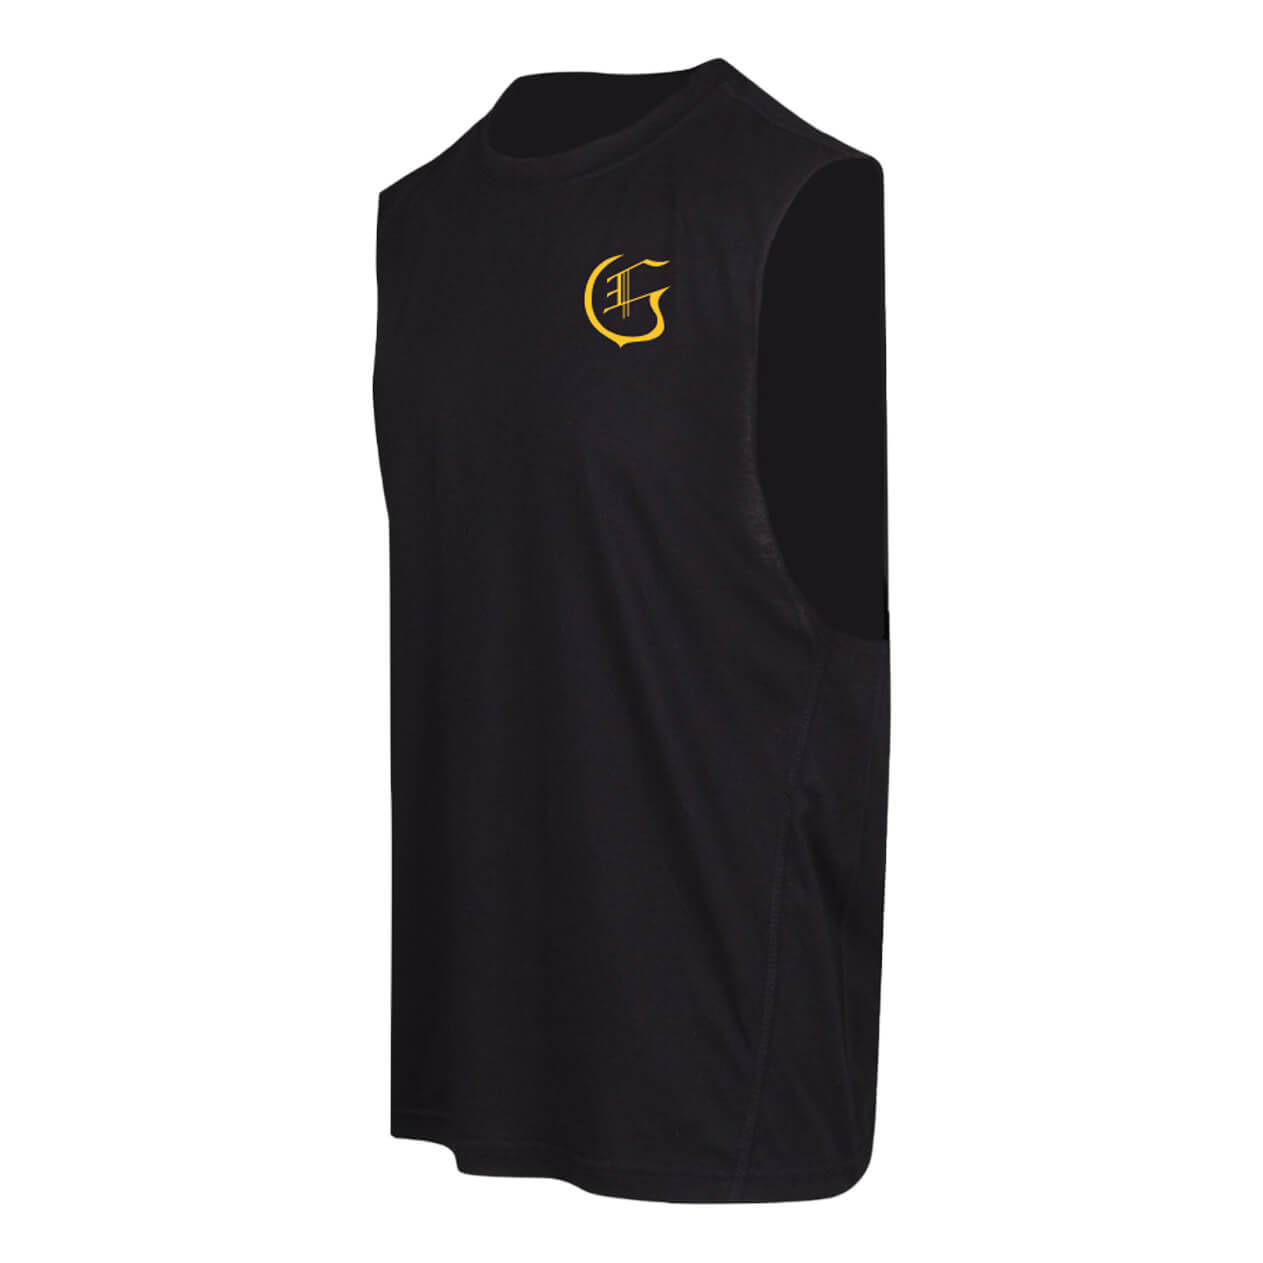 Mens Sleeveless Tee